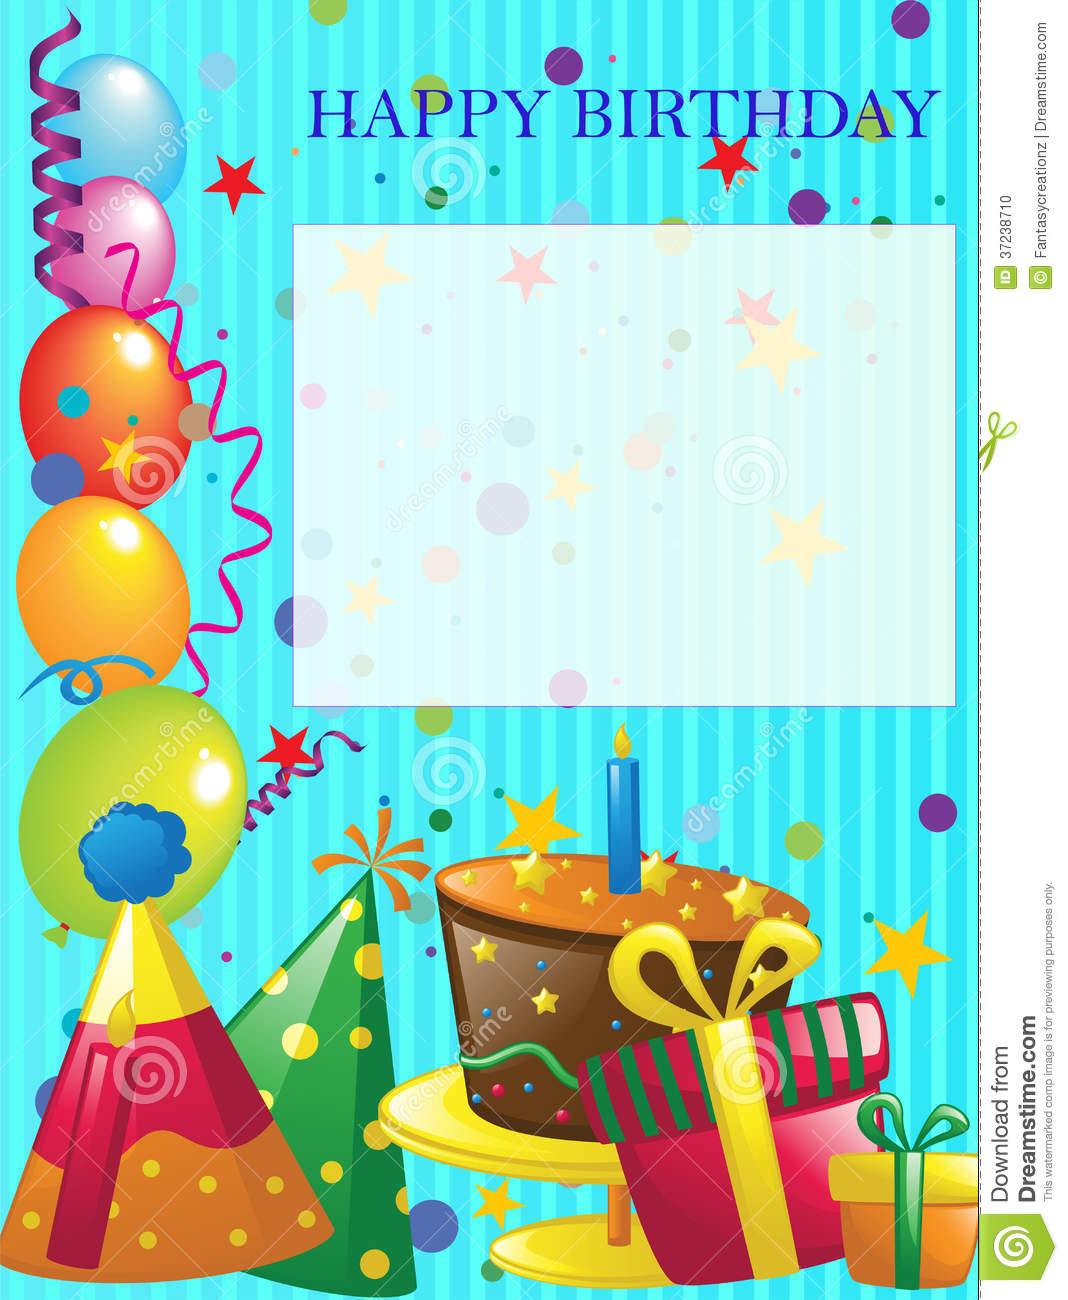 Background for birthday invitation boatremyeaton background for birthday invitation filmwisefo